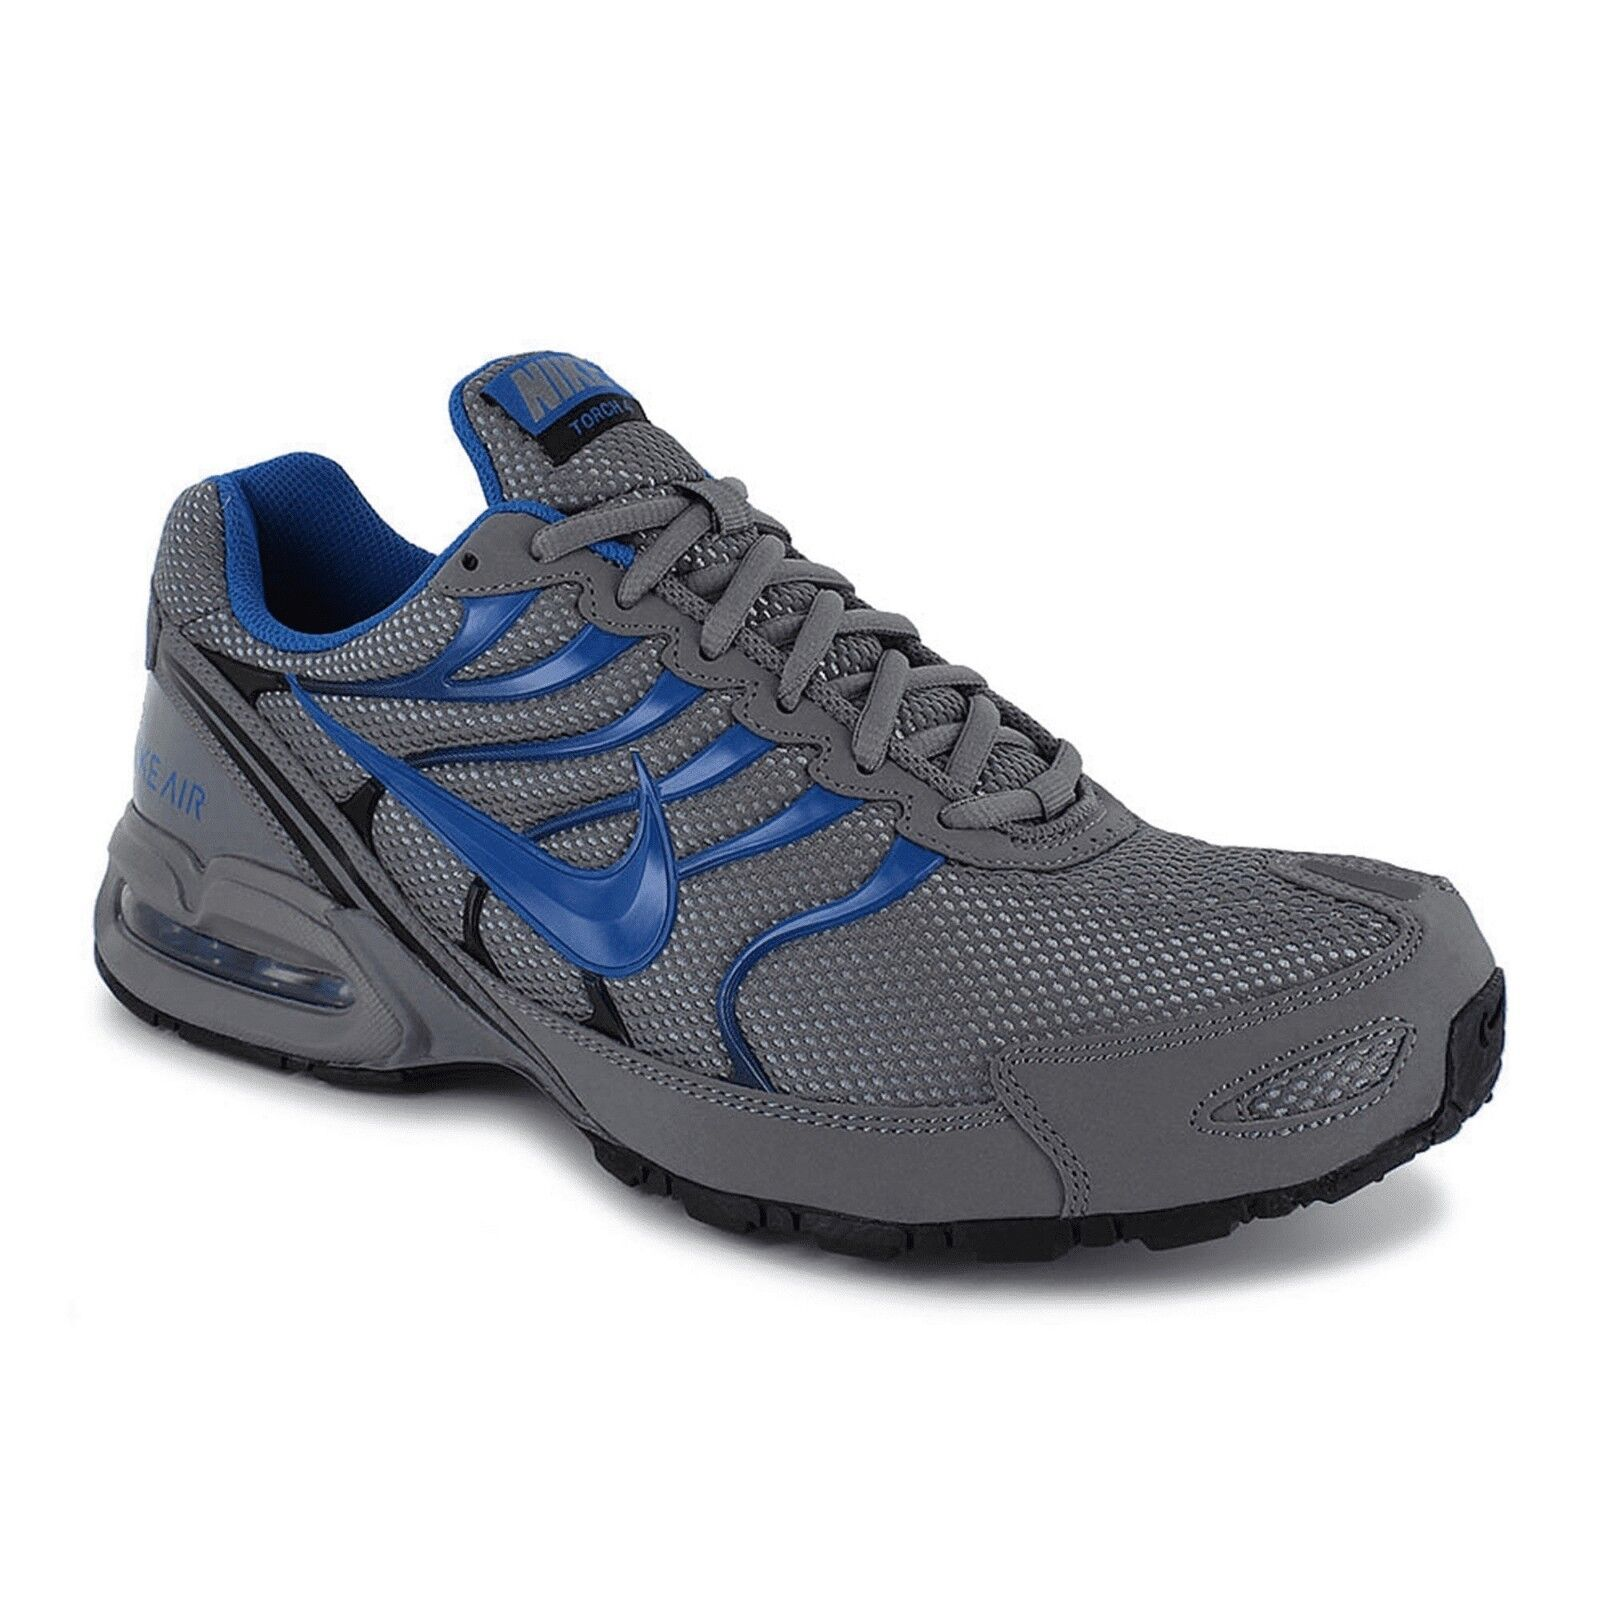 Nike Nike Nike Air Max Torch 4 Grey bluee Black 343846 009 Running shoes Men's Size 8.5 ea41c1